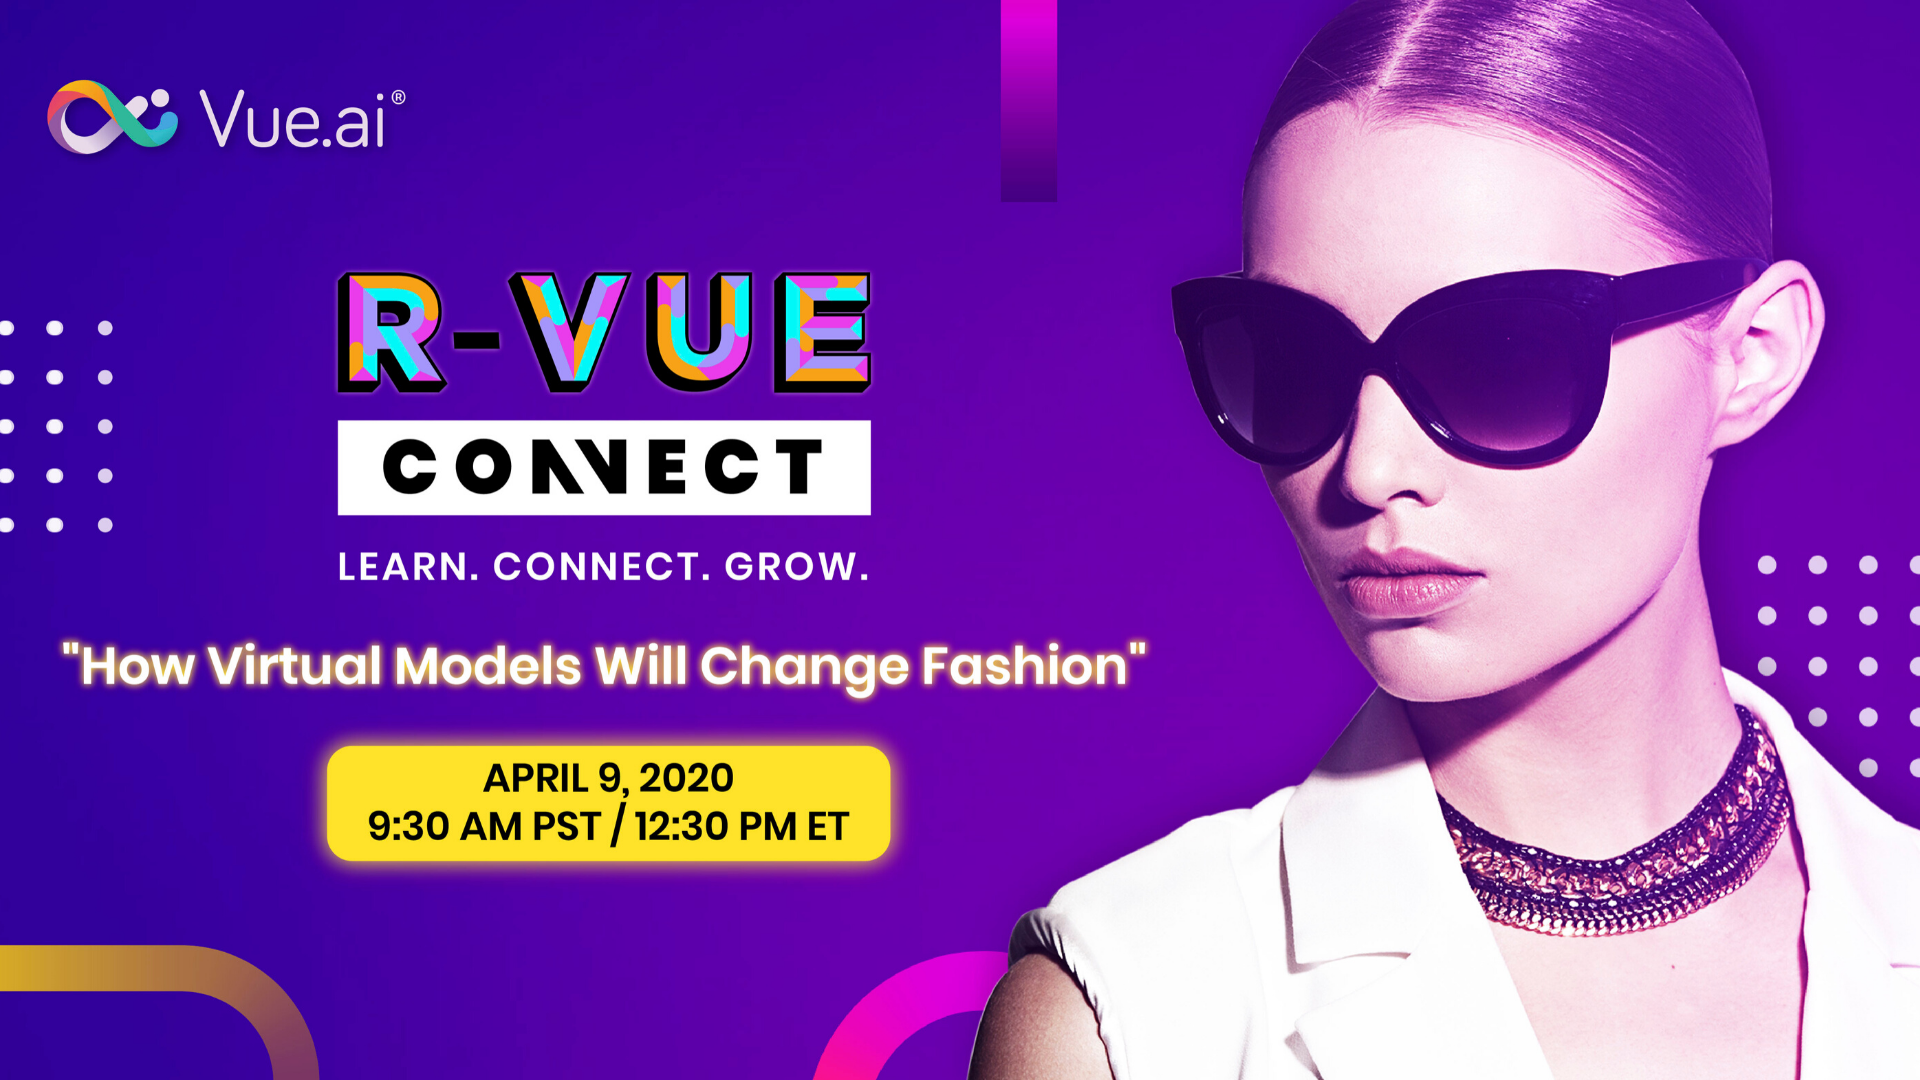 5 Reasons To Register For R-Vue Connect!